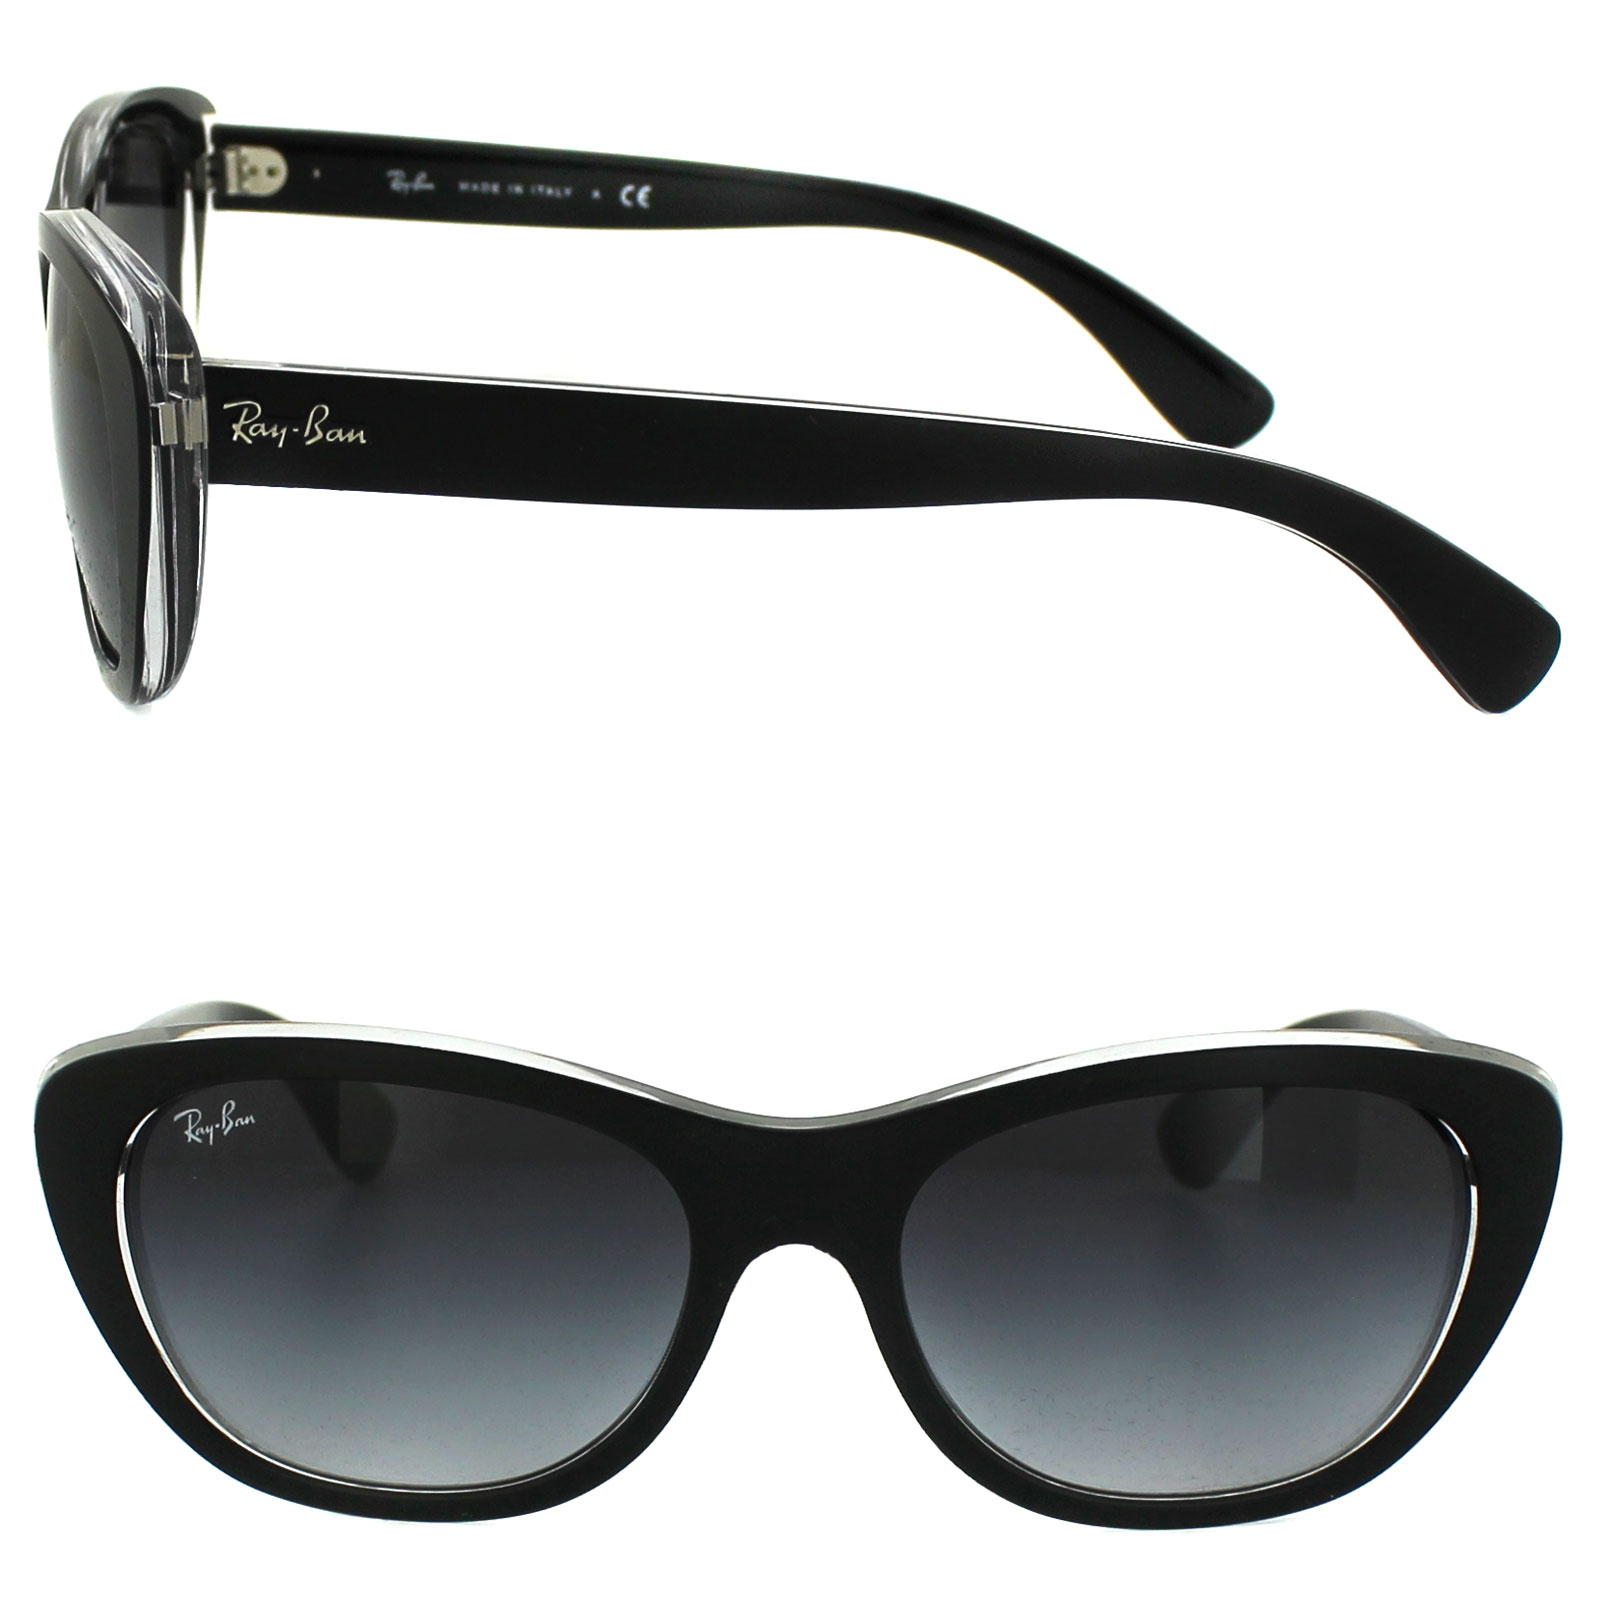 4aa30623c291e Sentinel Ray-Ban Sunglasses 4227 60528G Top Matt Black on Transparent Grey  Gradient